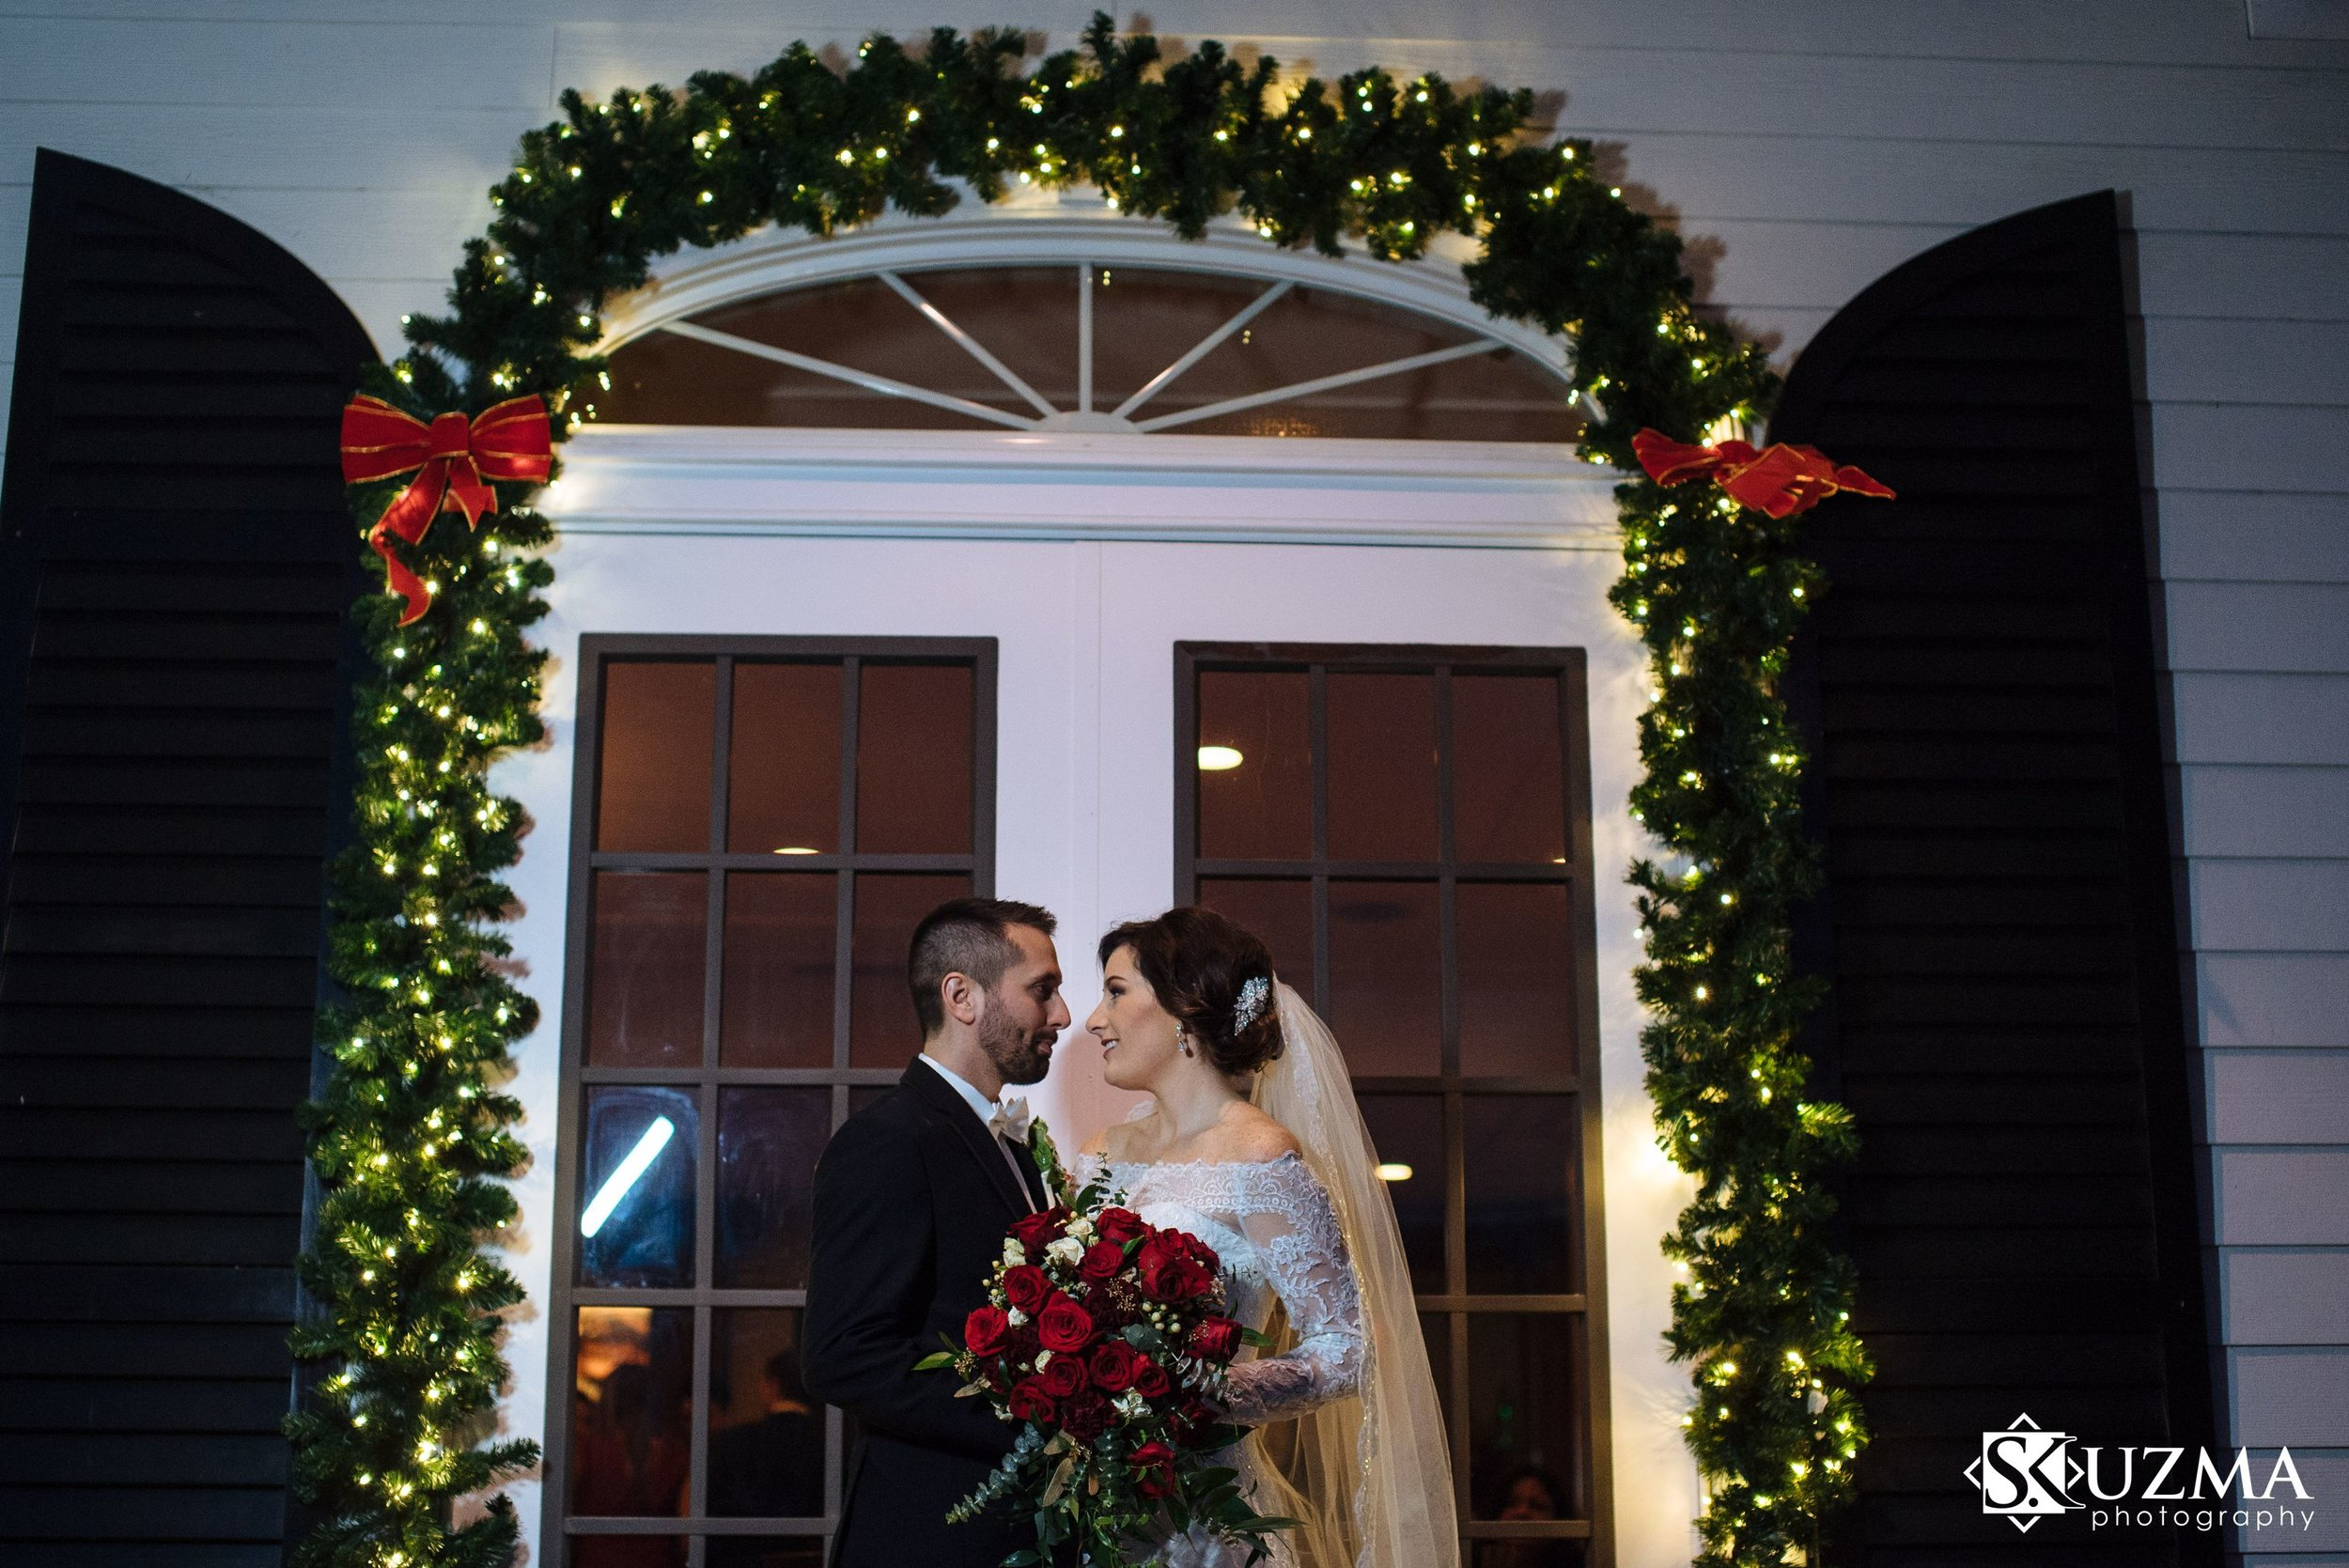 <p><strong>Megan + Drew</strong></br>The Carriage House</br><a href=/megan-andrew>View →</a></p>